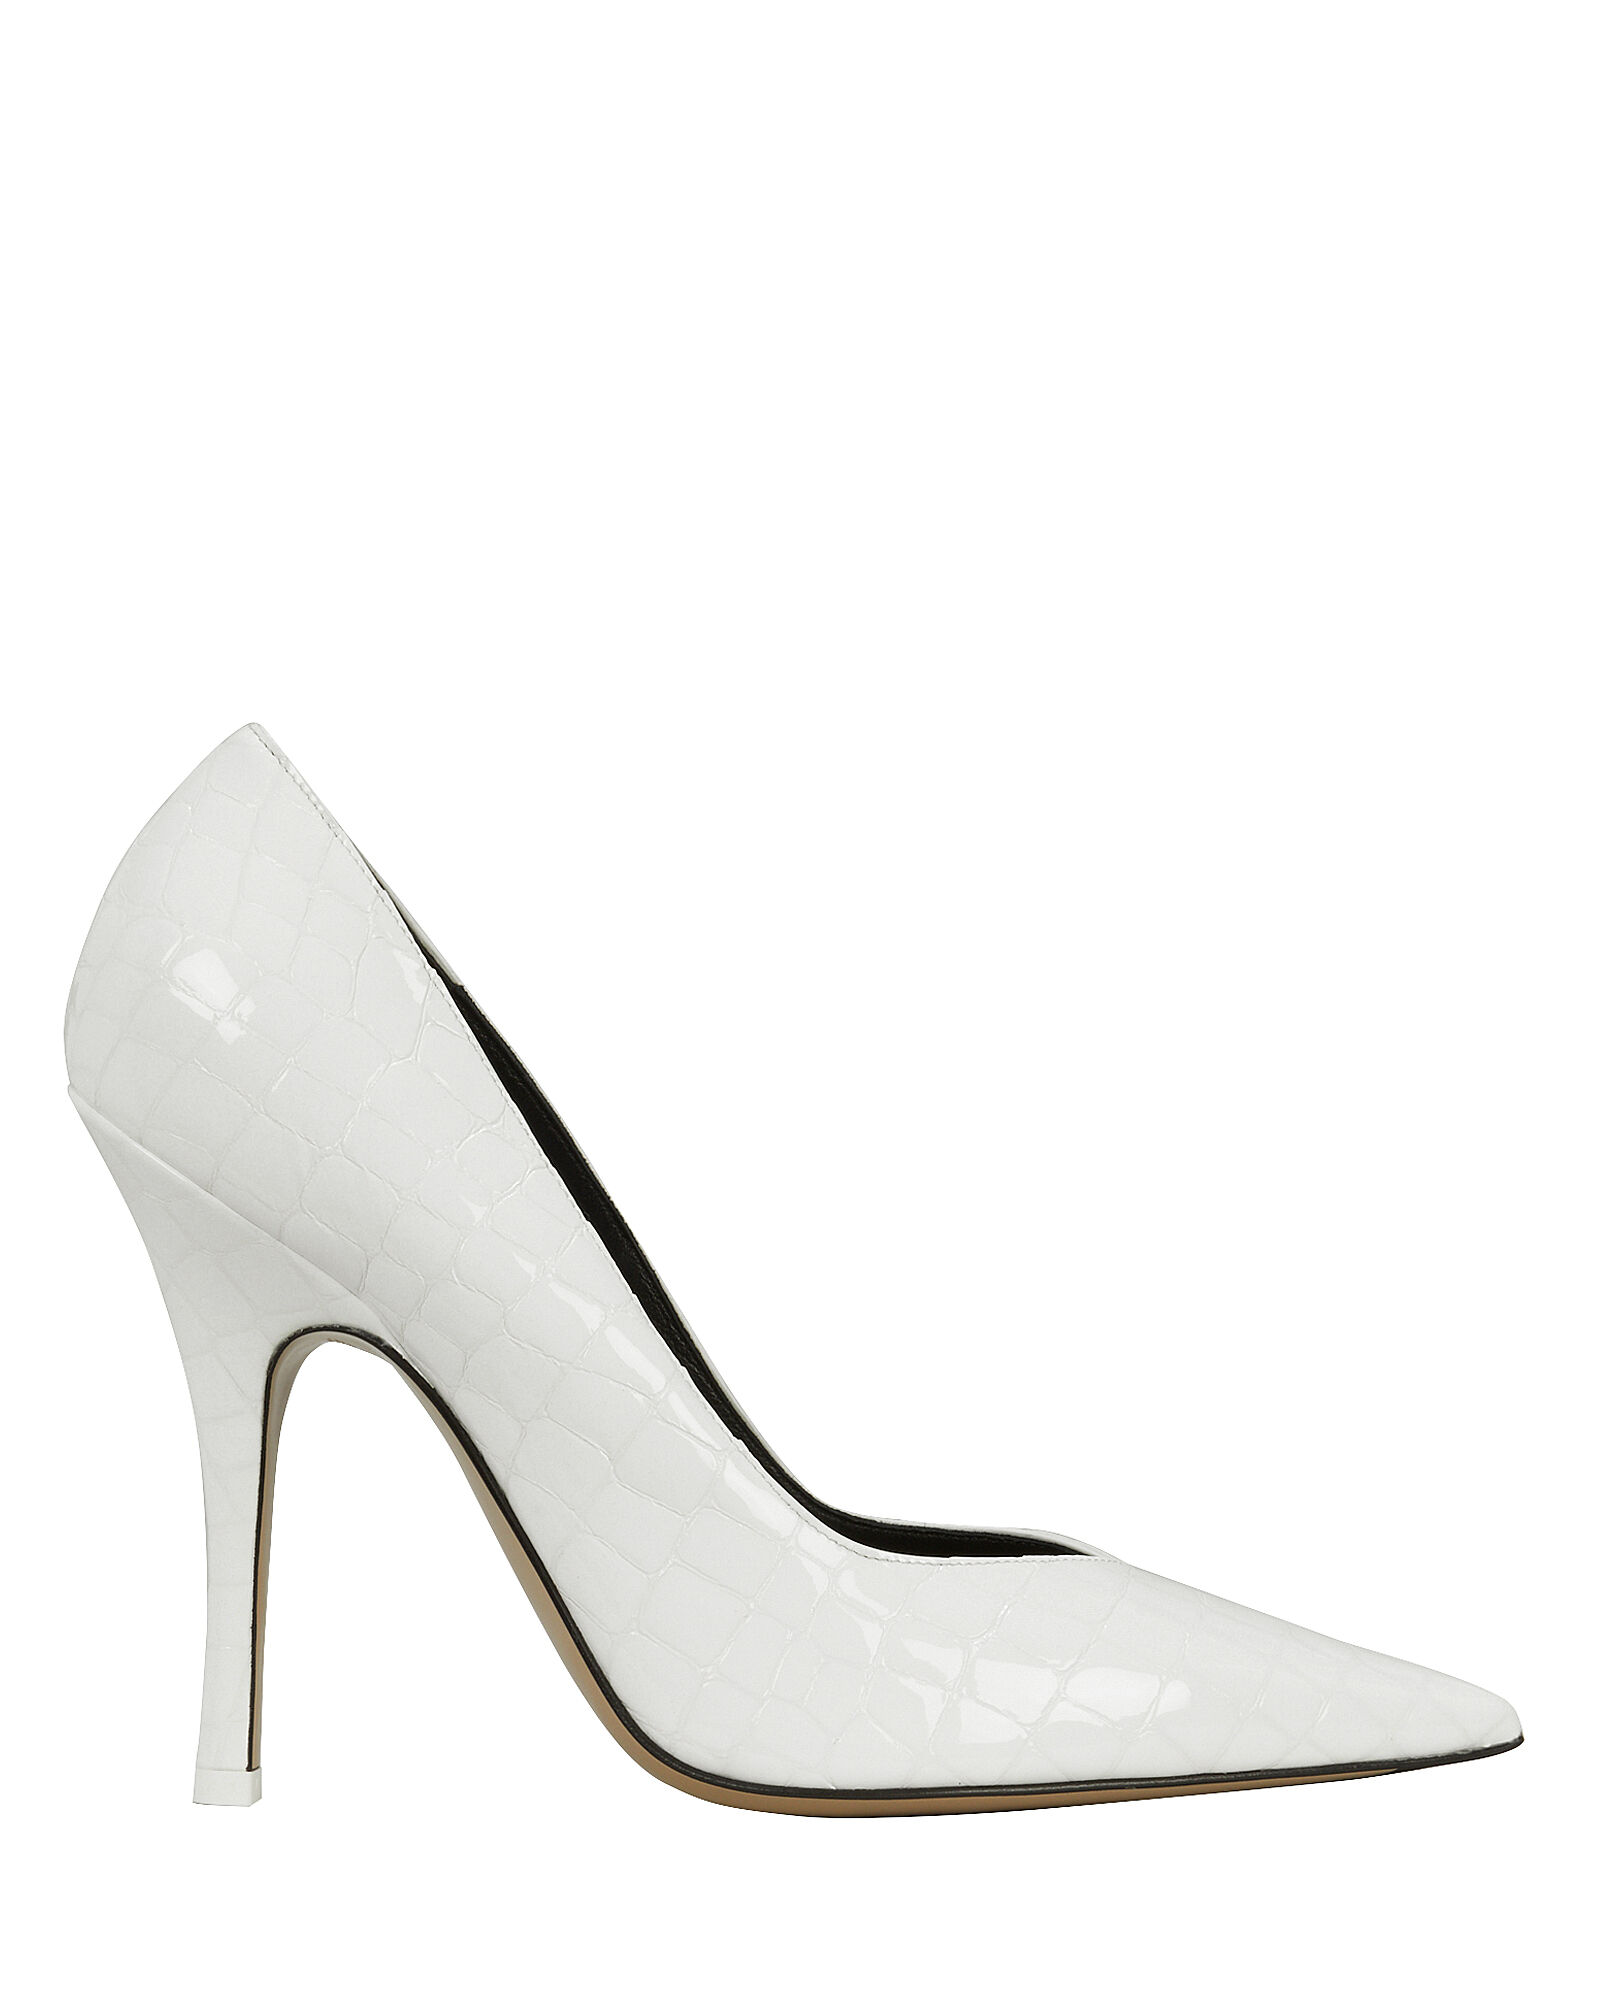 Croc-Embossed Leather Pumps, WHITE, hi-res